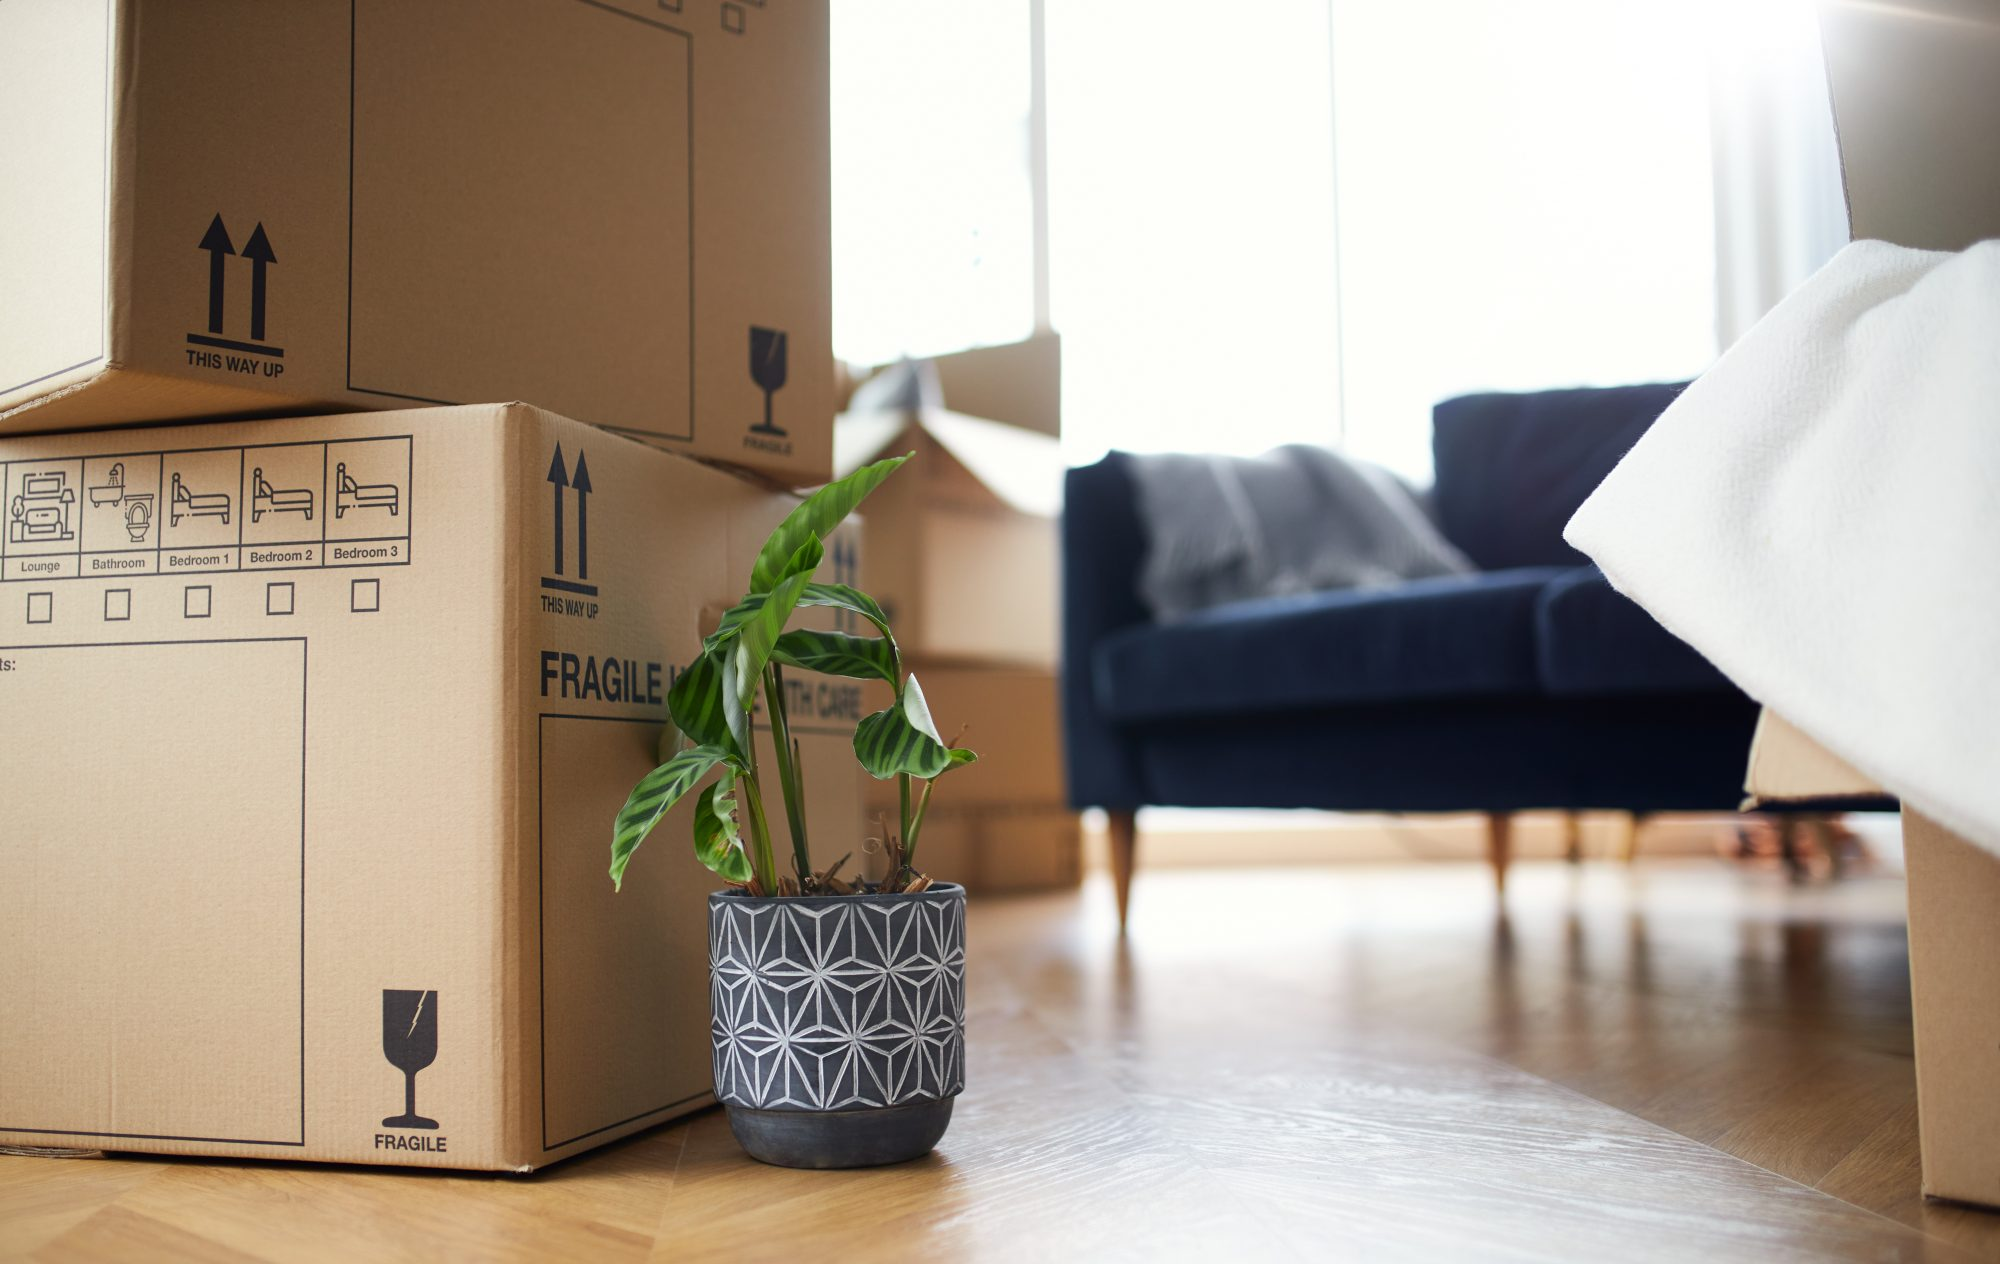 A green plant in a navy blue planter on the wooden floor of a home near large cardboard moving boxes.